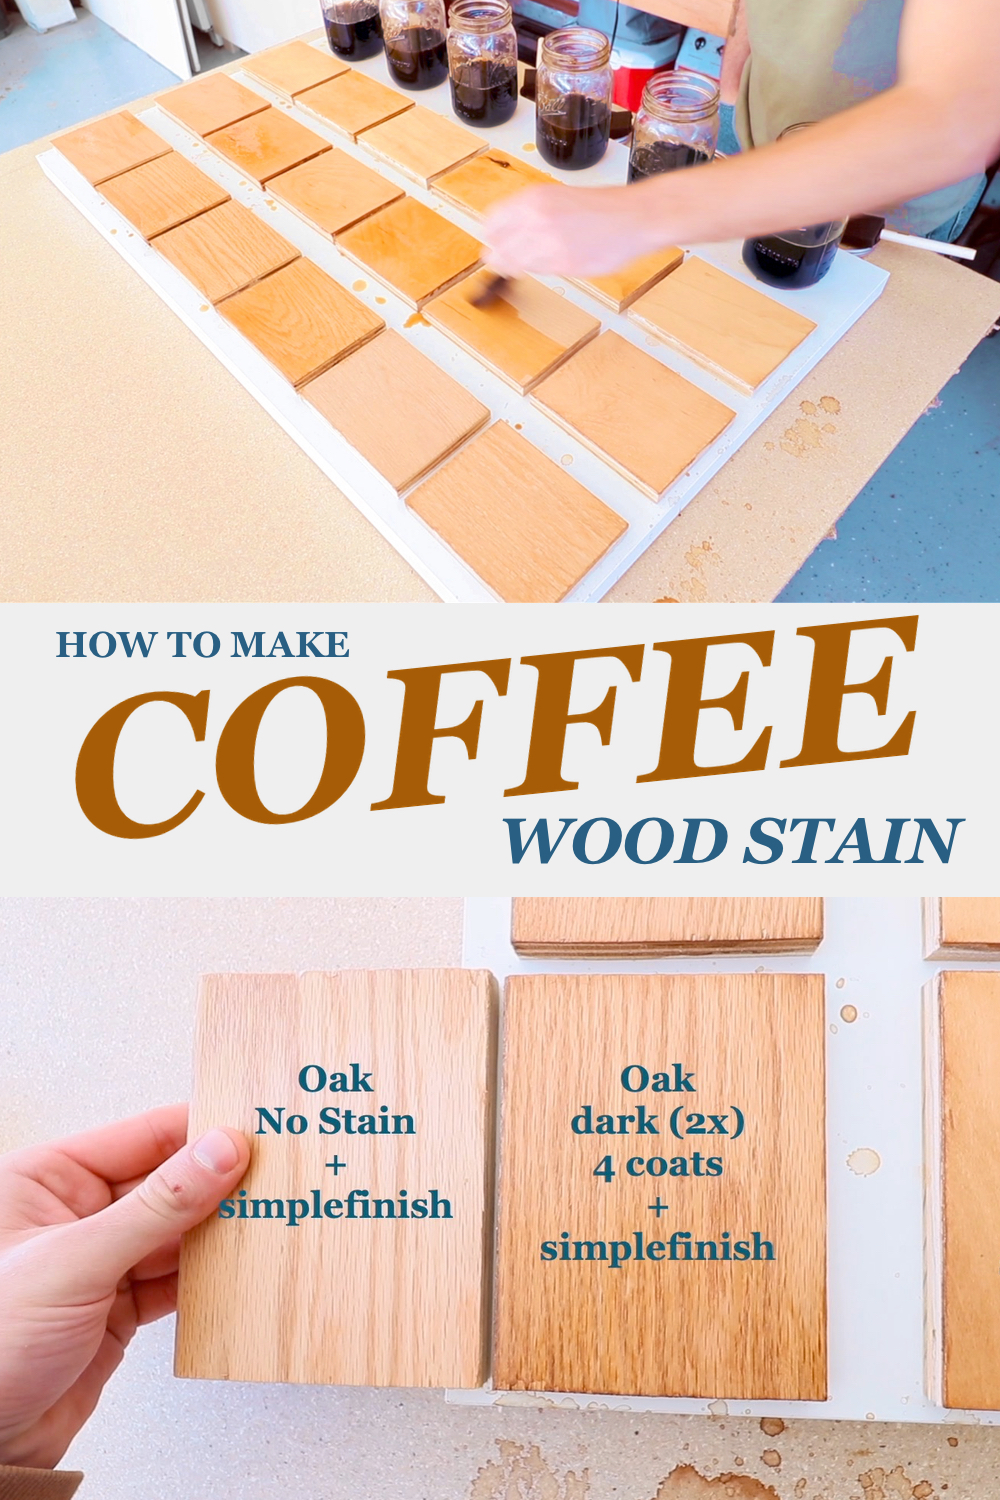 How to stain wood with coffee | Modern Builds DIY